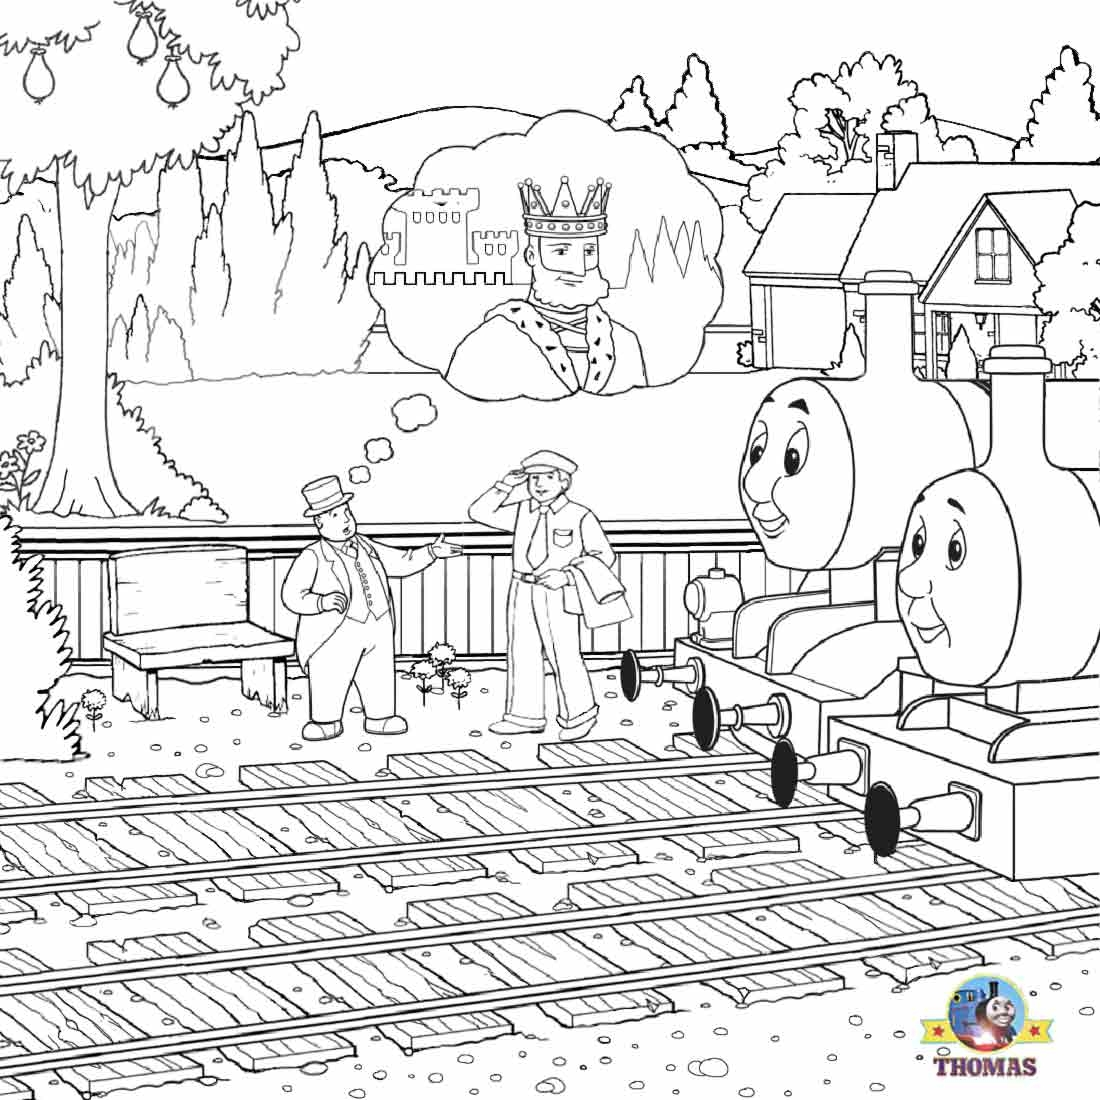 Electronic Coloring Pages at GetDrawings.com | Free for personal use ...